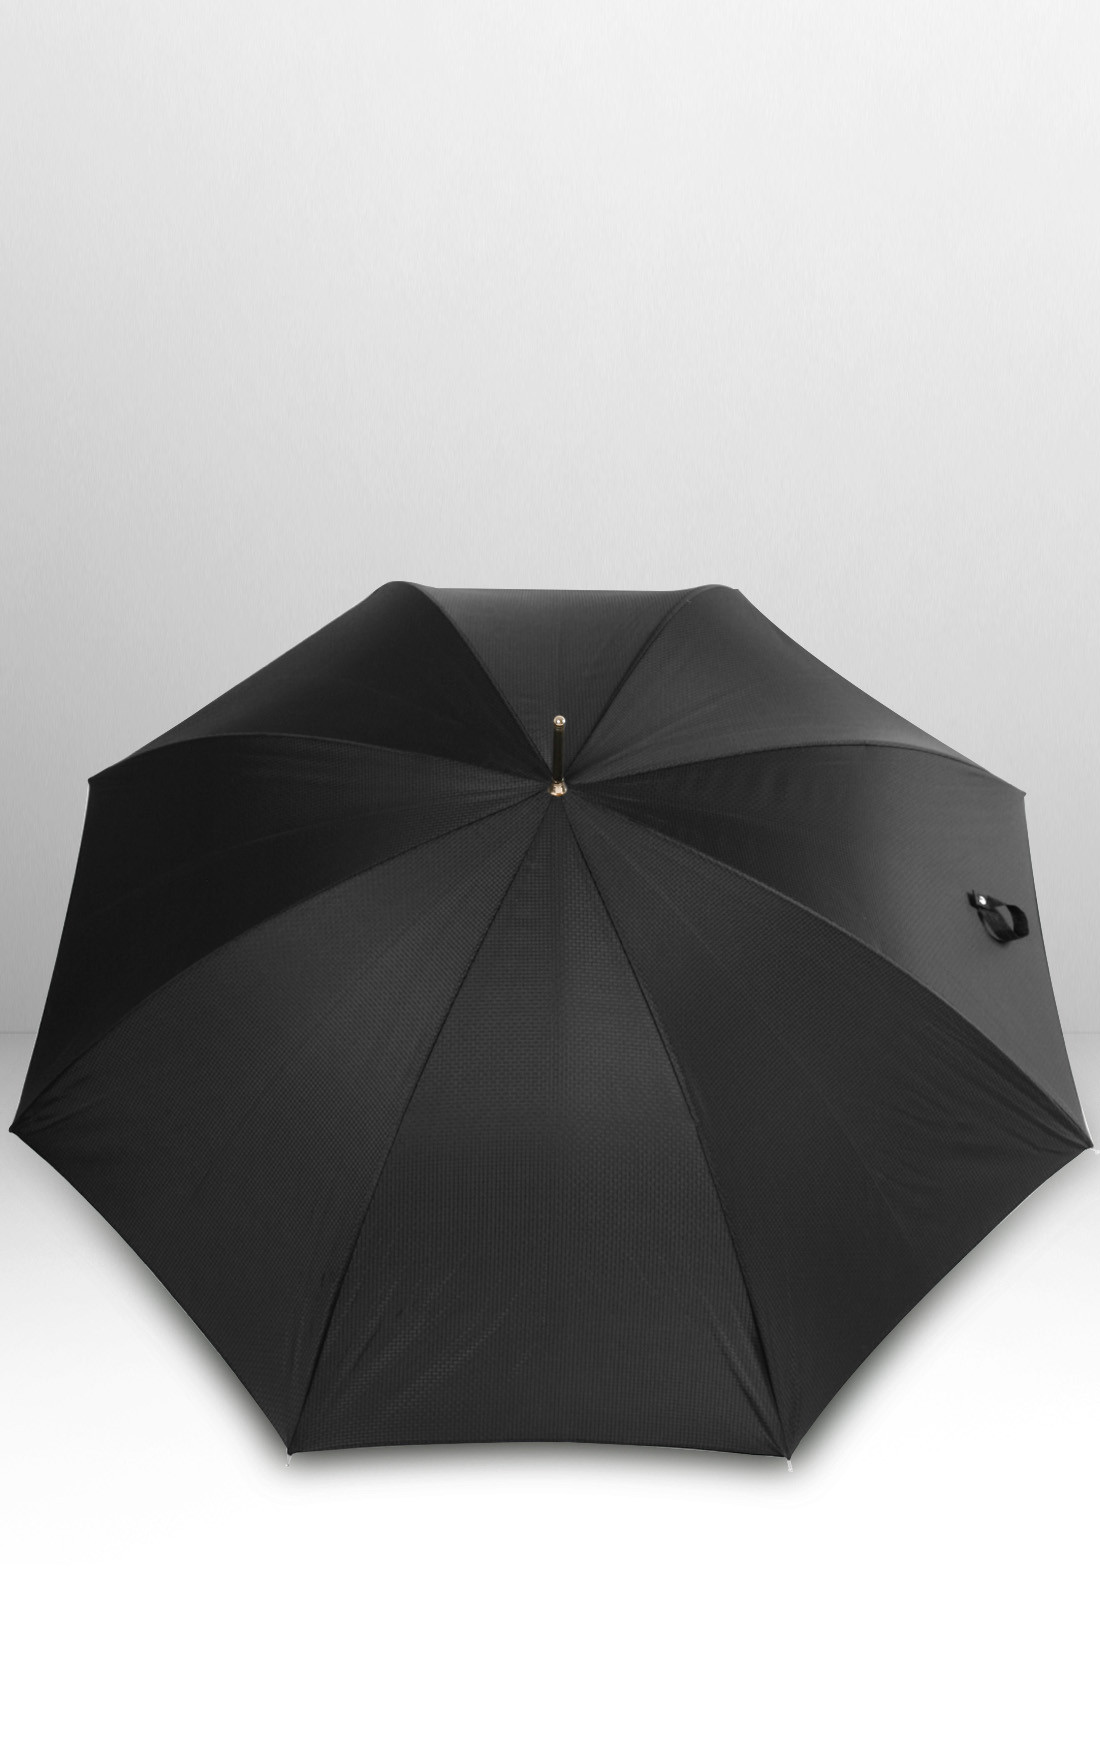 Pasotti - Black Skull Umbrella (478-OXFORD/18-W33TESTINA-NERA)